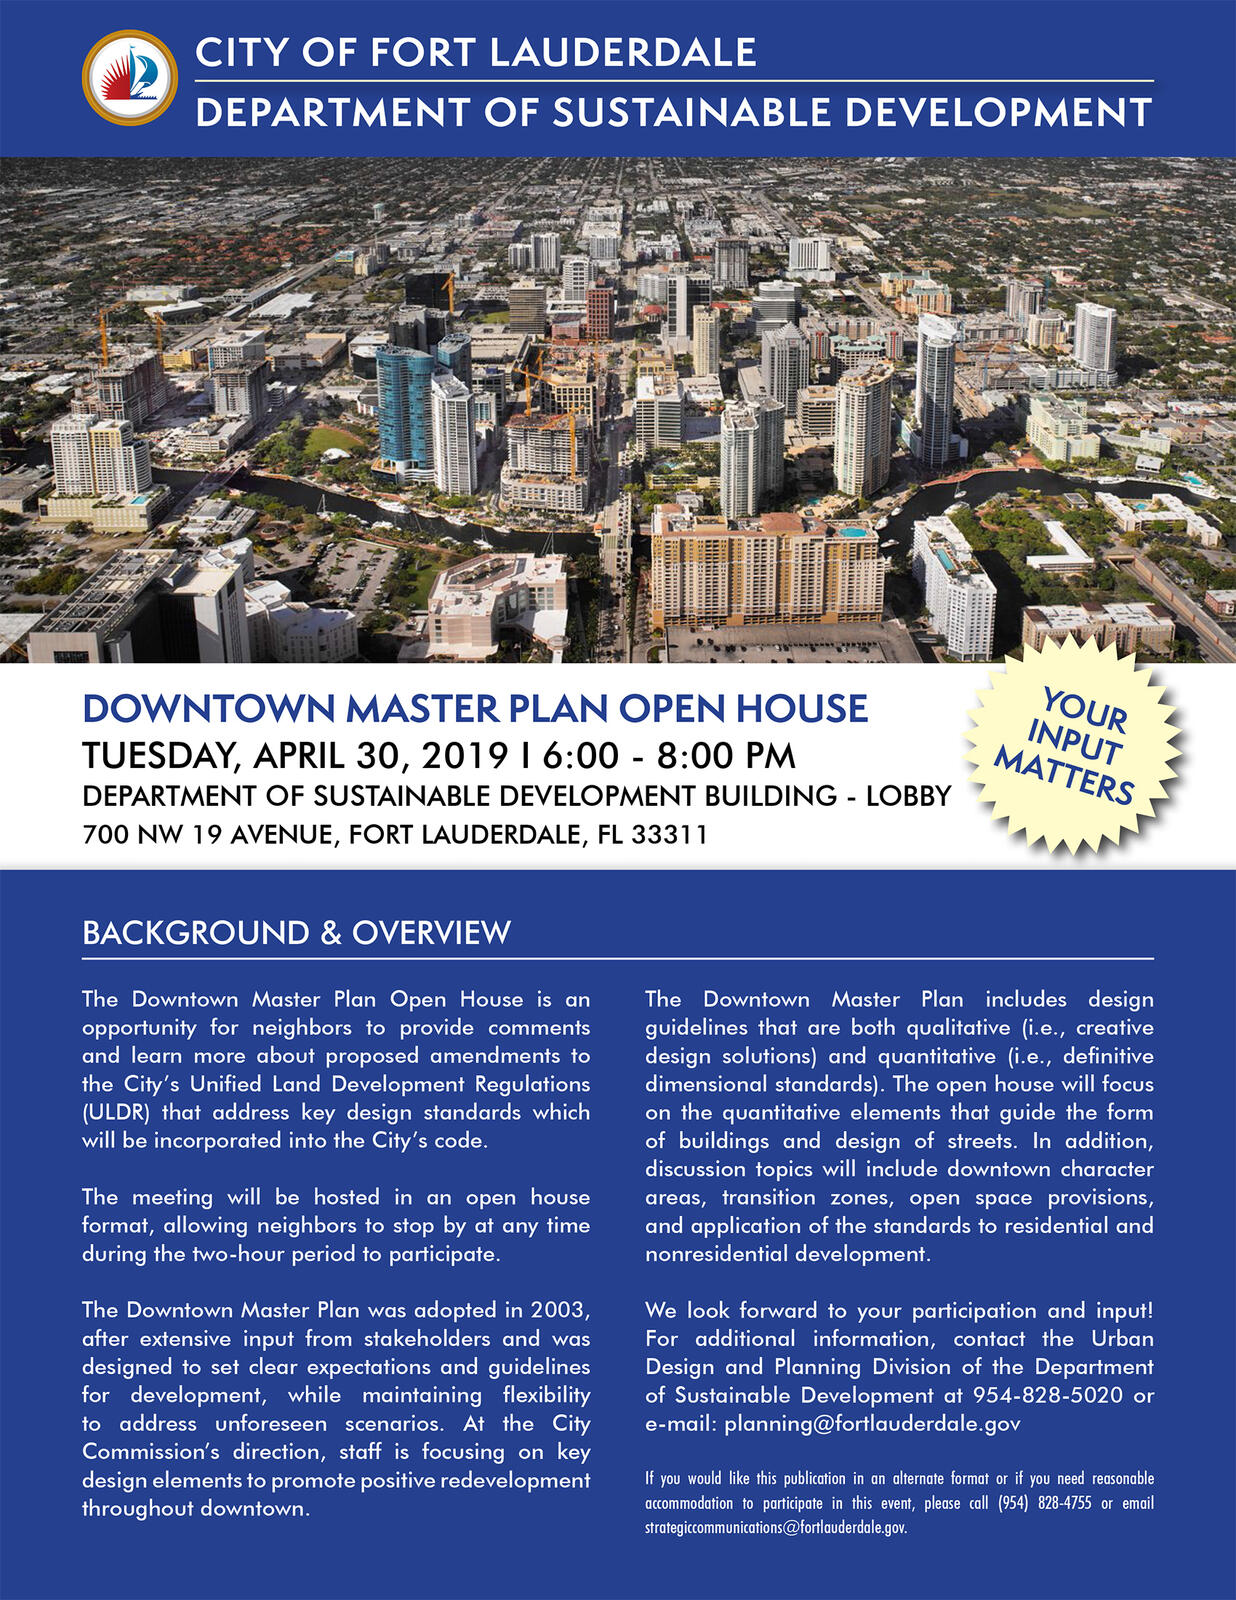 Downtown Master Plan Open House - April 30, 6-8 pm (City of